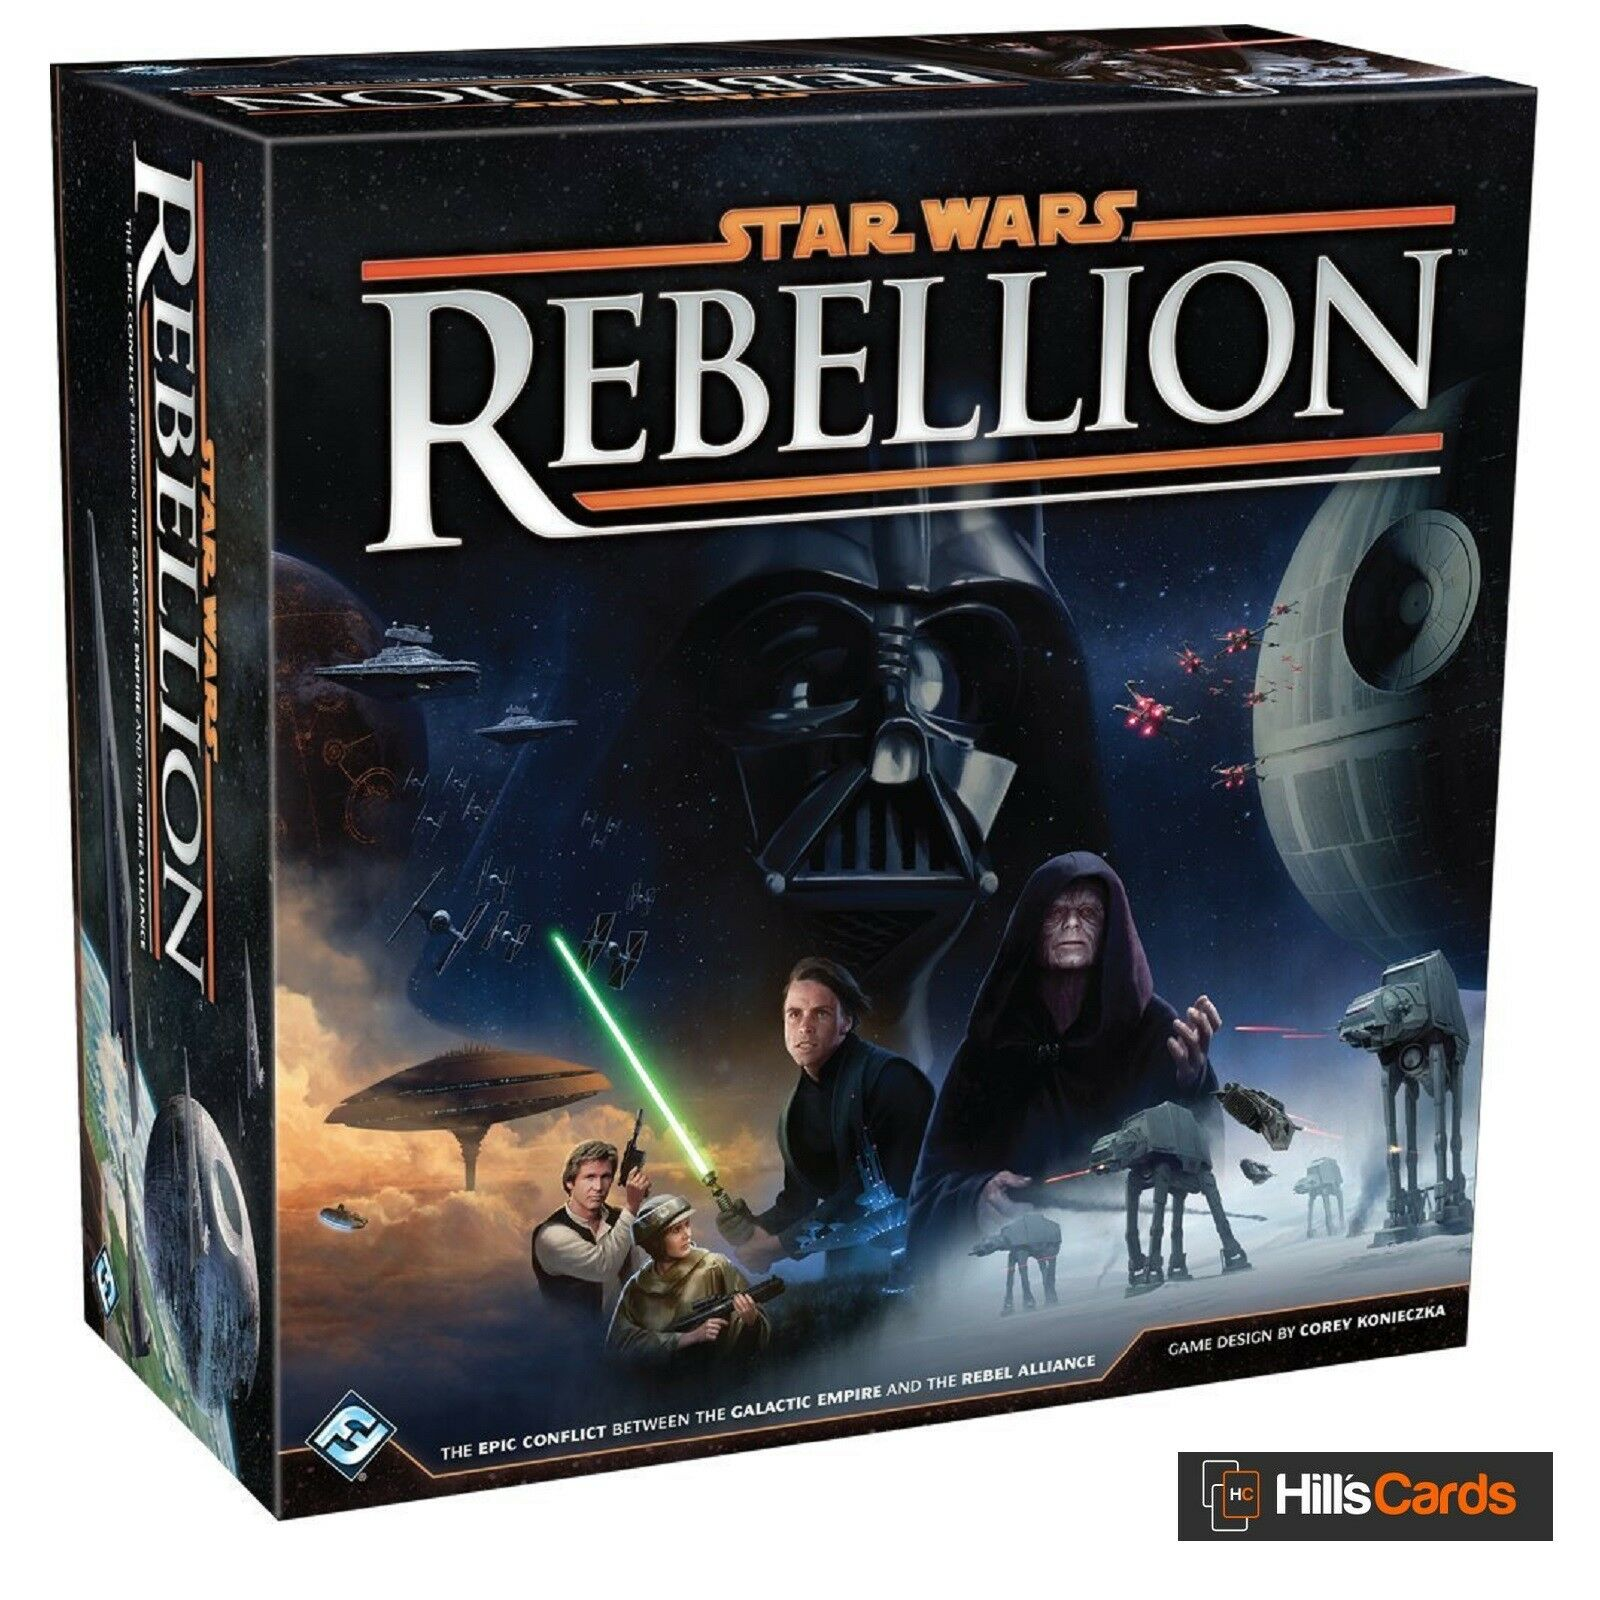 Star Wars Rebellion Board Game By Fantasy Flight Games EBay - Board game design software